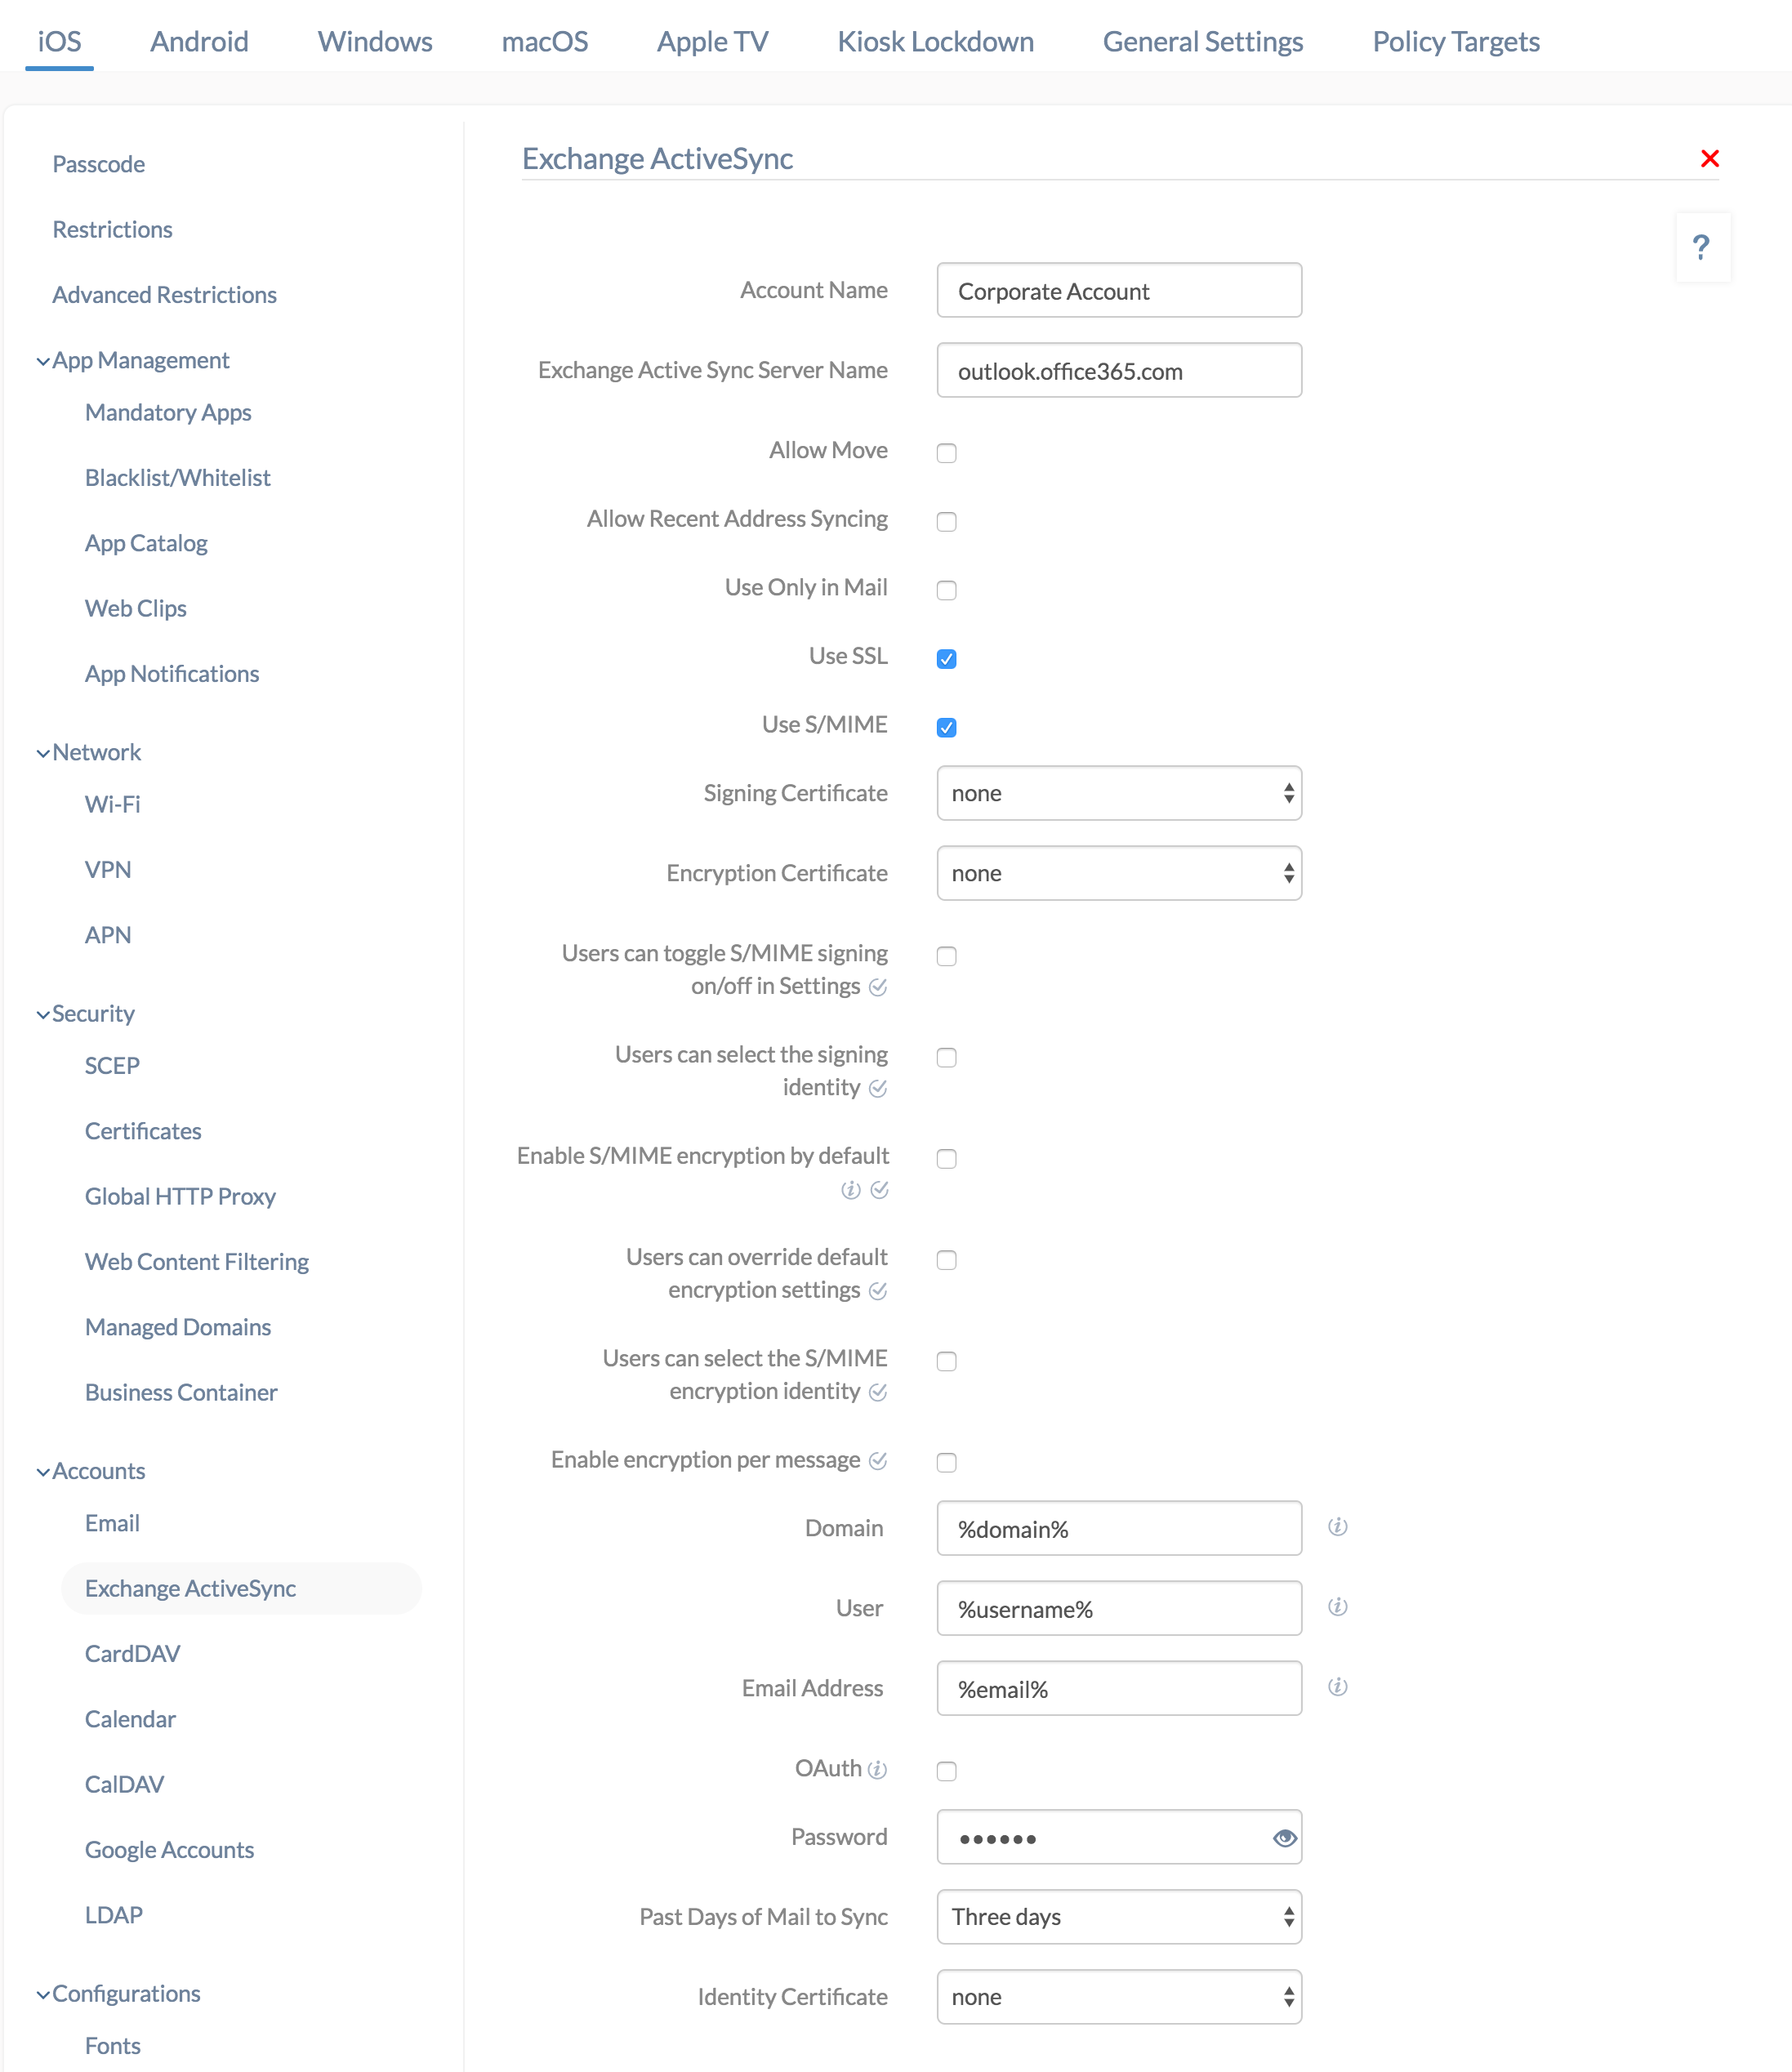 configure active sync on iOS devices